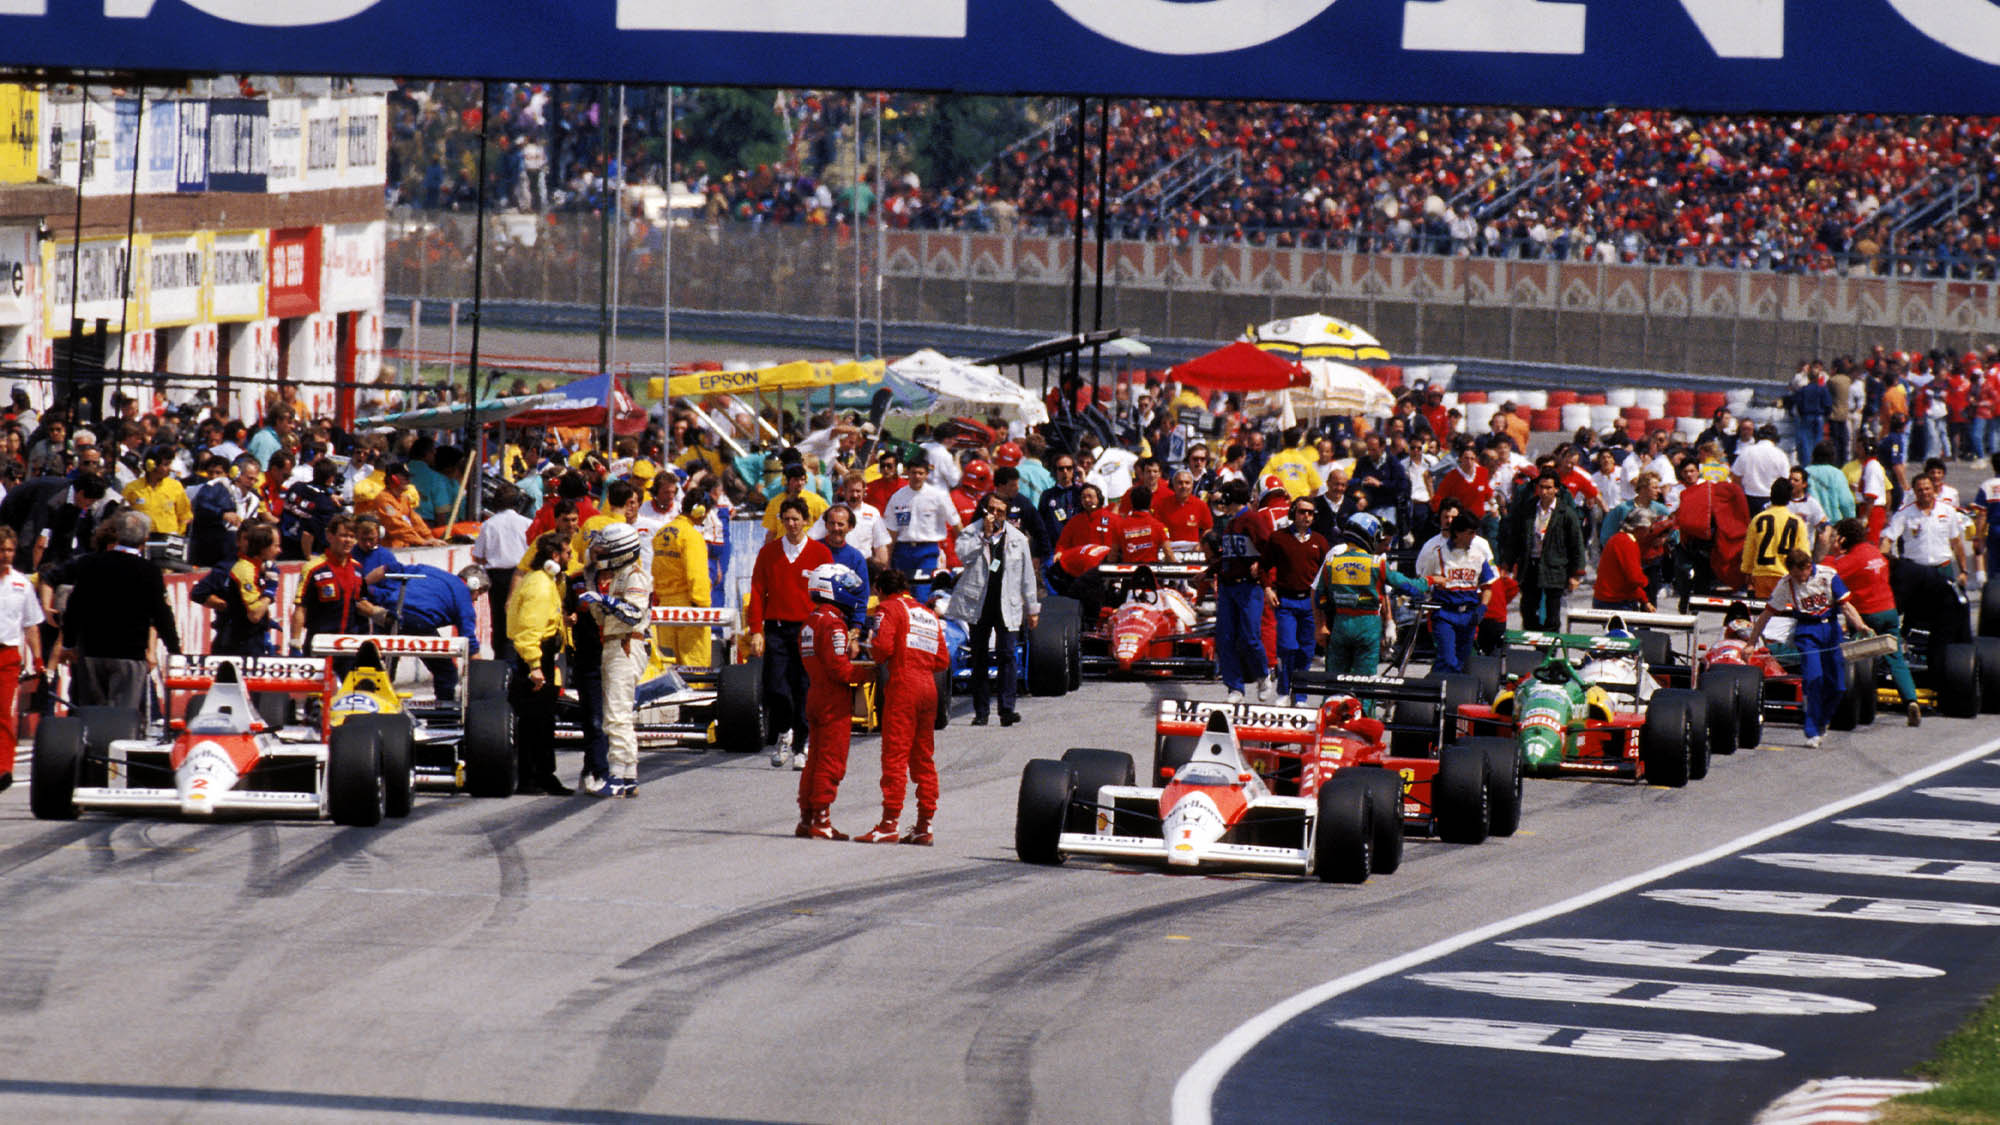 Starting grid at the 1989 San Marino Grand Prix at Imola